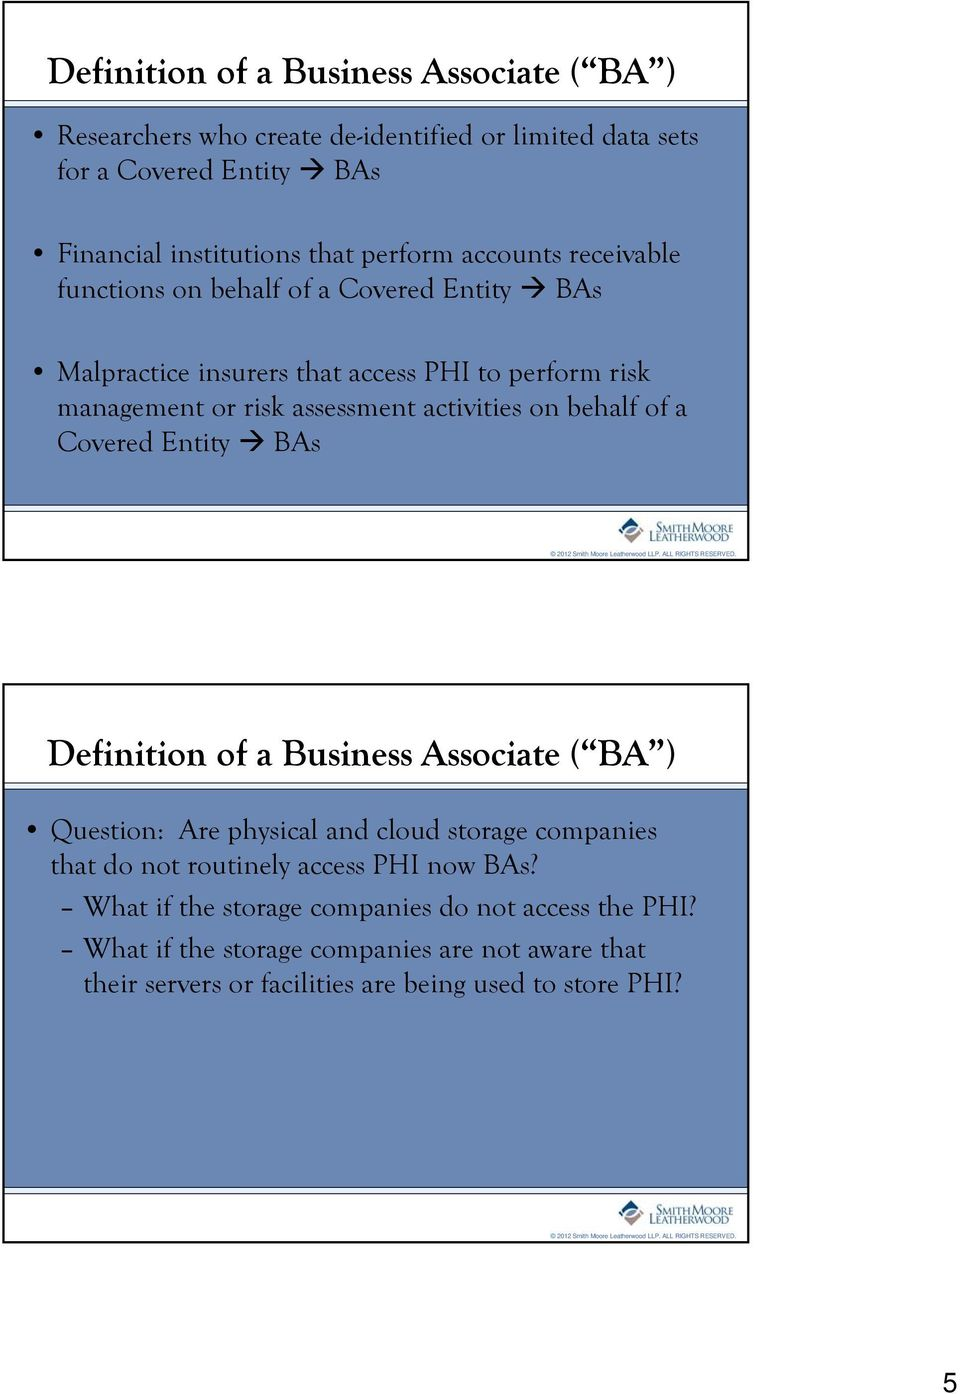 behalf of a Covered Entity BAs Definition of a Business Associate ( BA ) Question: Are physical and cloud storage companies that do not routinely access PHI now